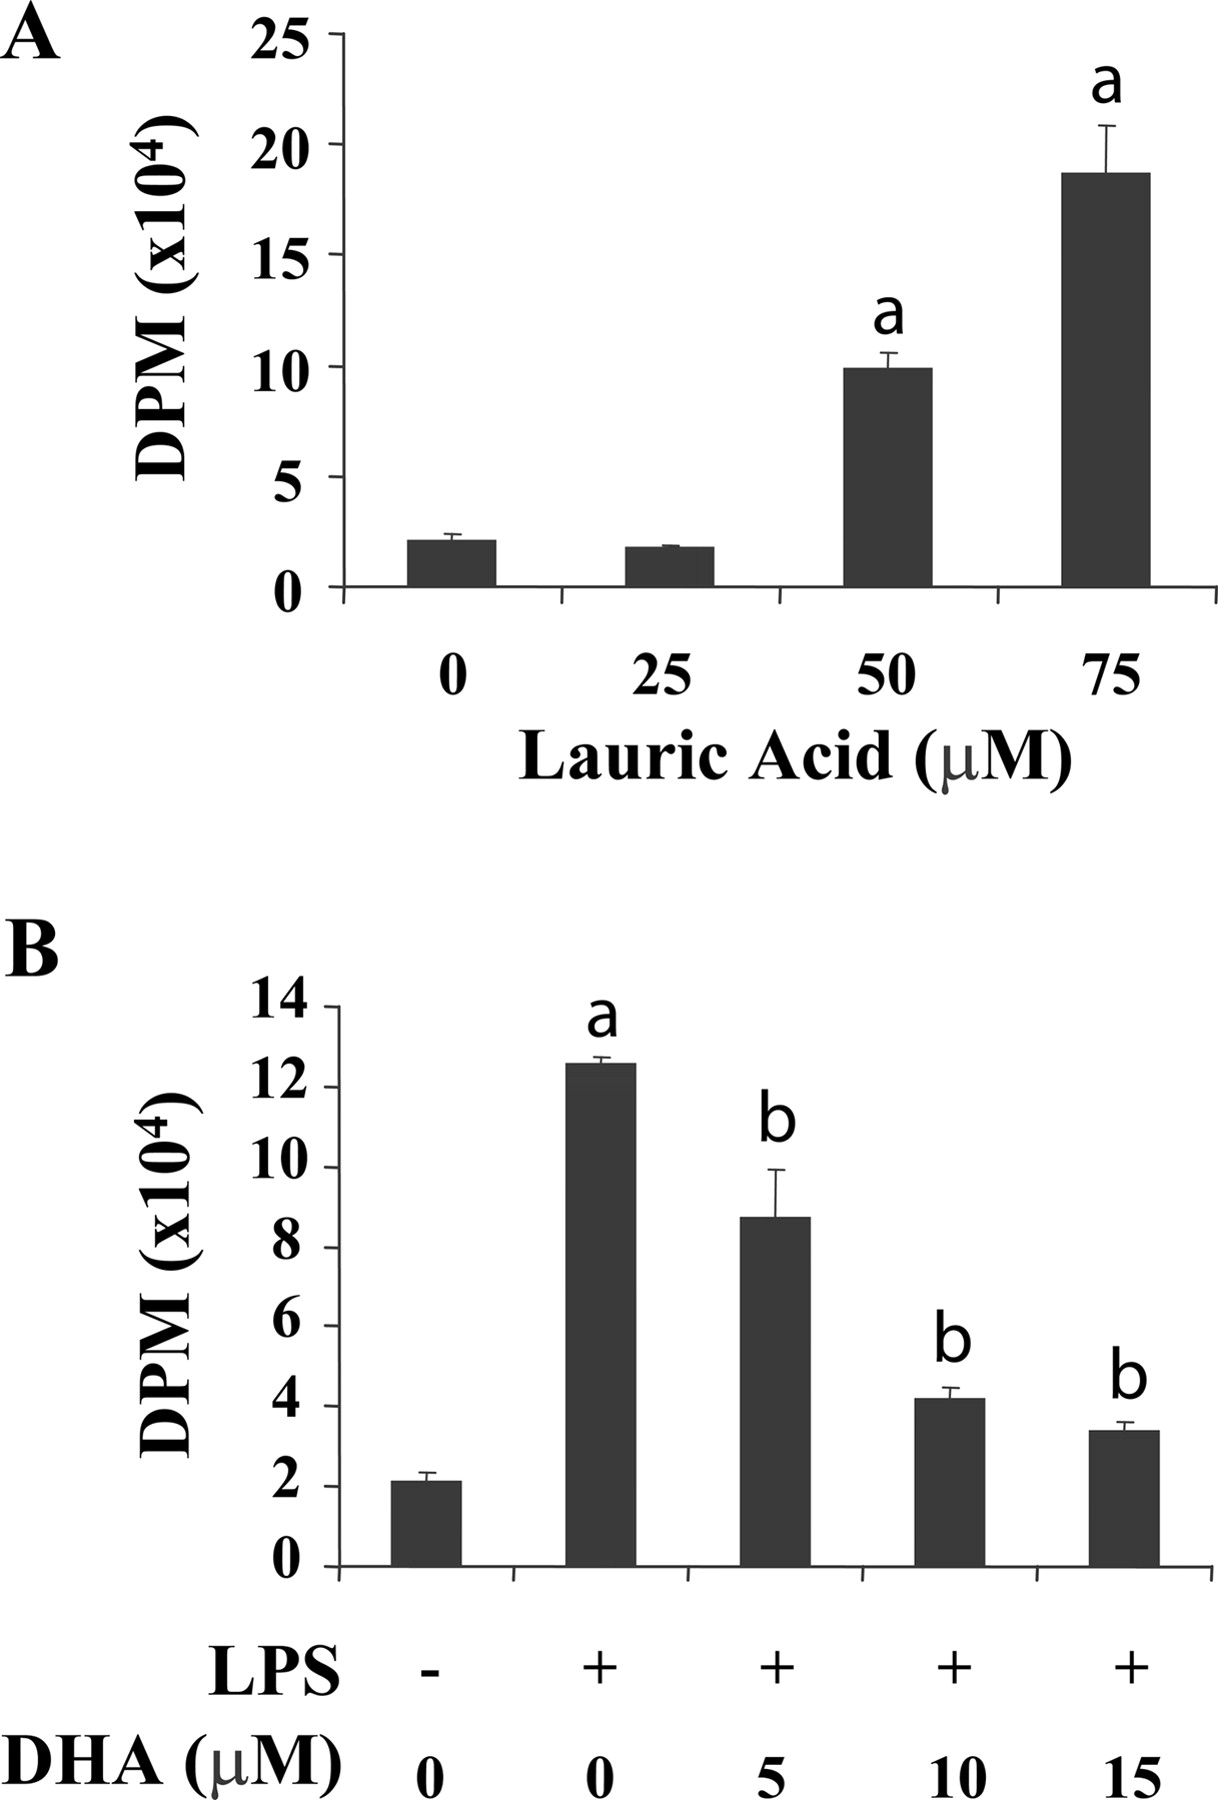 Saturated And Polyunsaturated Fatty Acids Reciprocally Modulate Dendritic Cell Functions Mediated Through Tlr4 The Journal Of Immunology